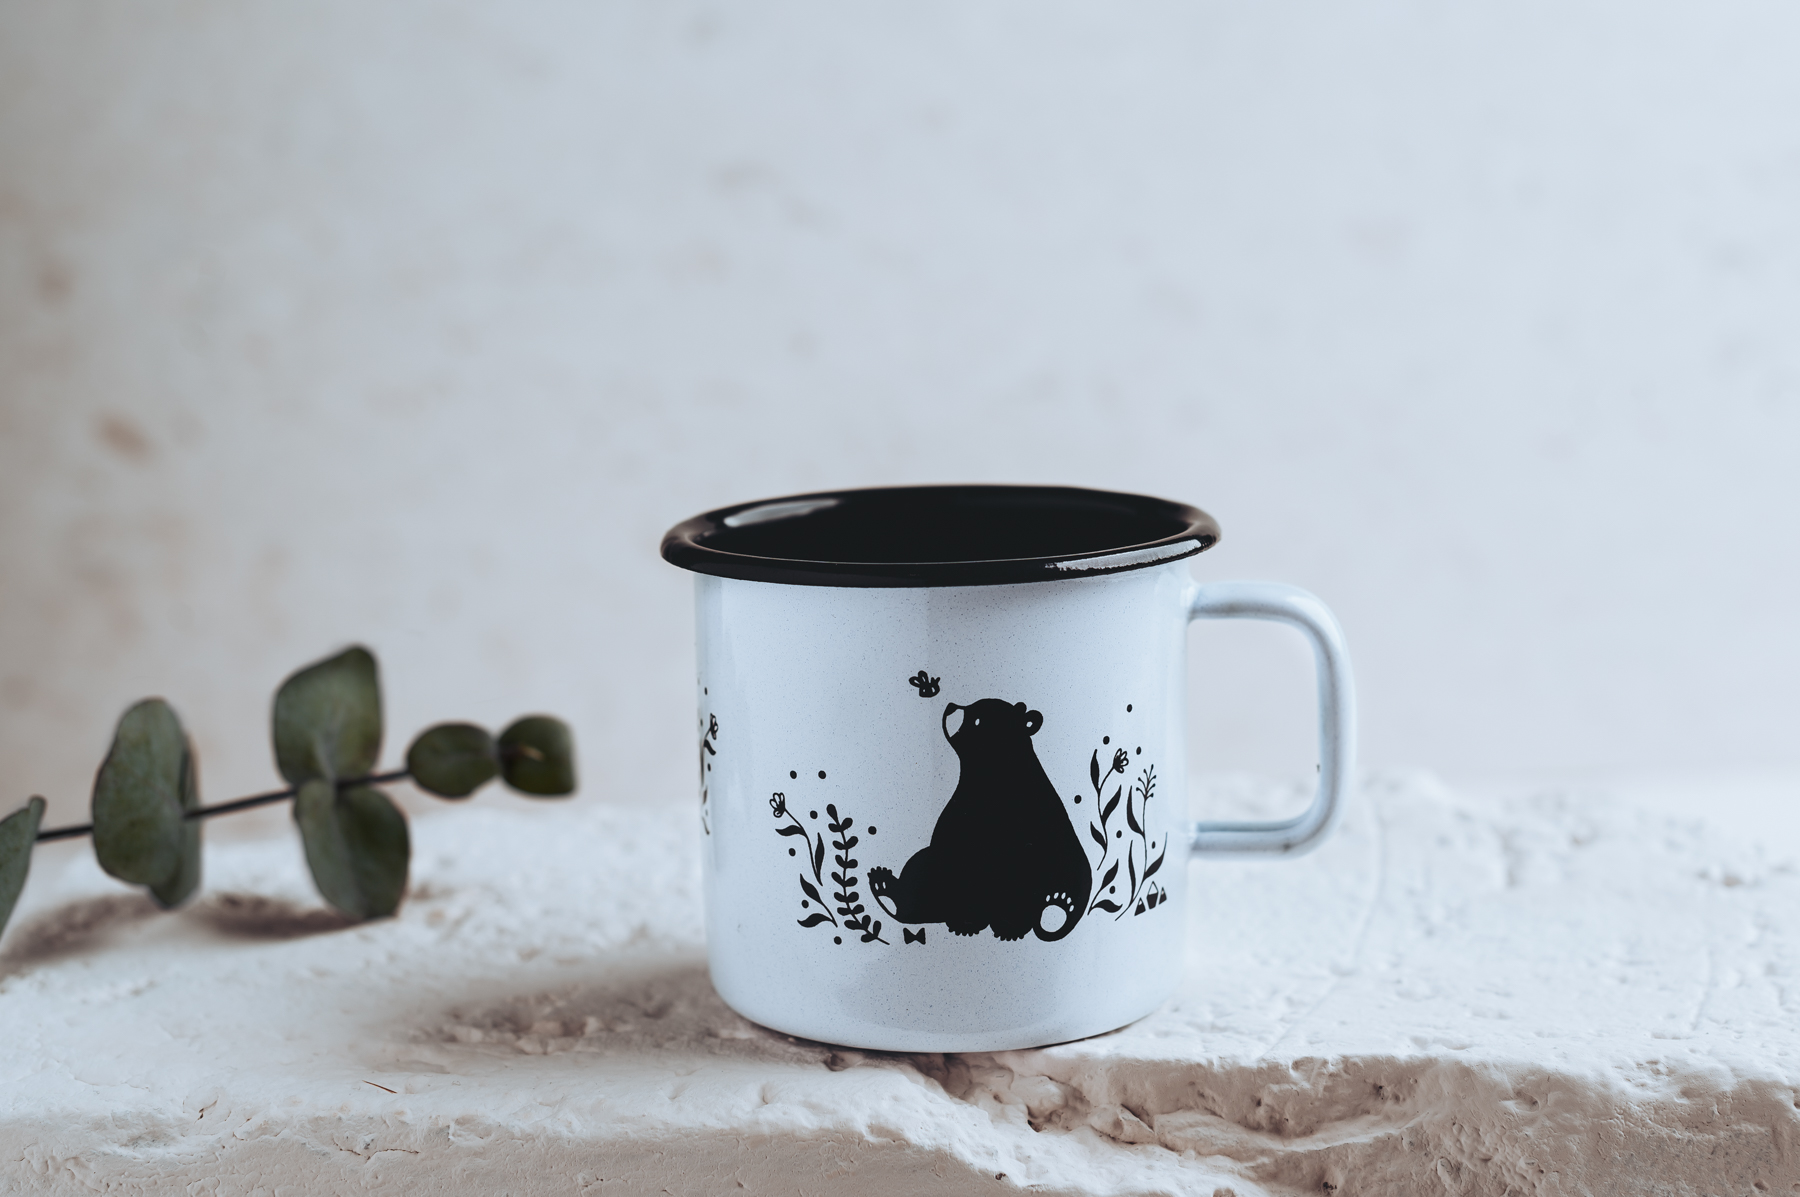 coffee mug bear vintage enamel illustration mug cute